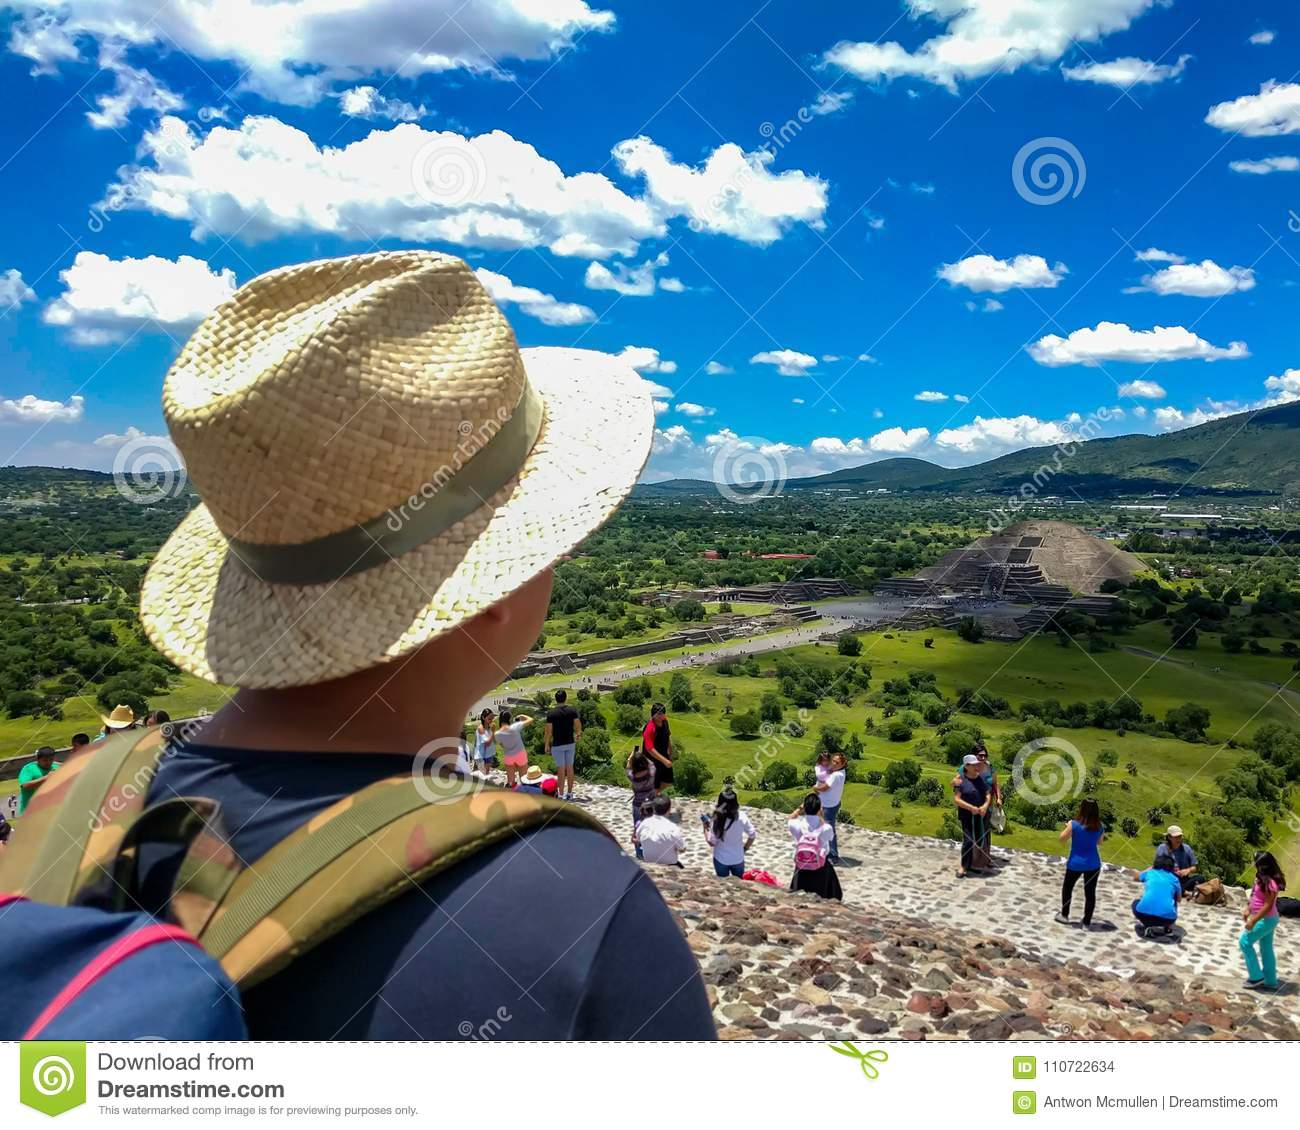 Tourists at Teotihuacan, Mexico. Point of view from top of Pyramid of the Sun.